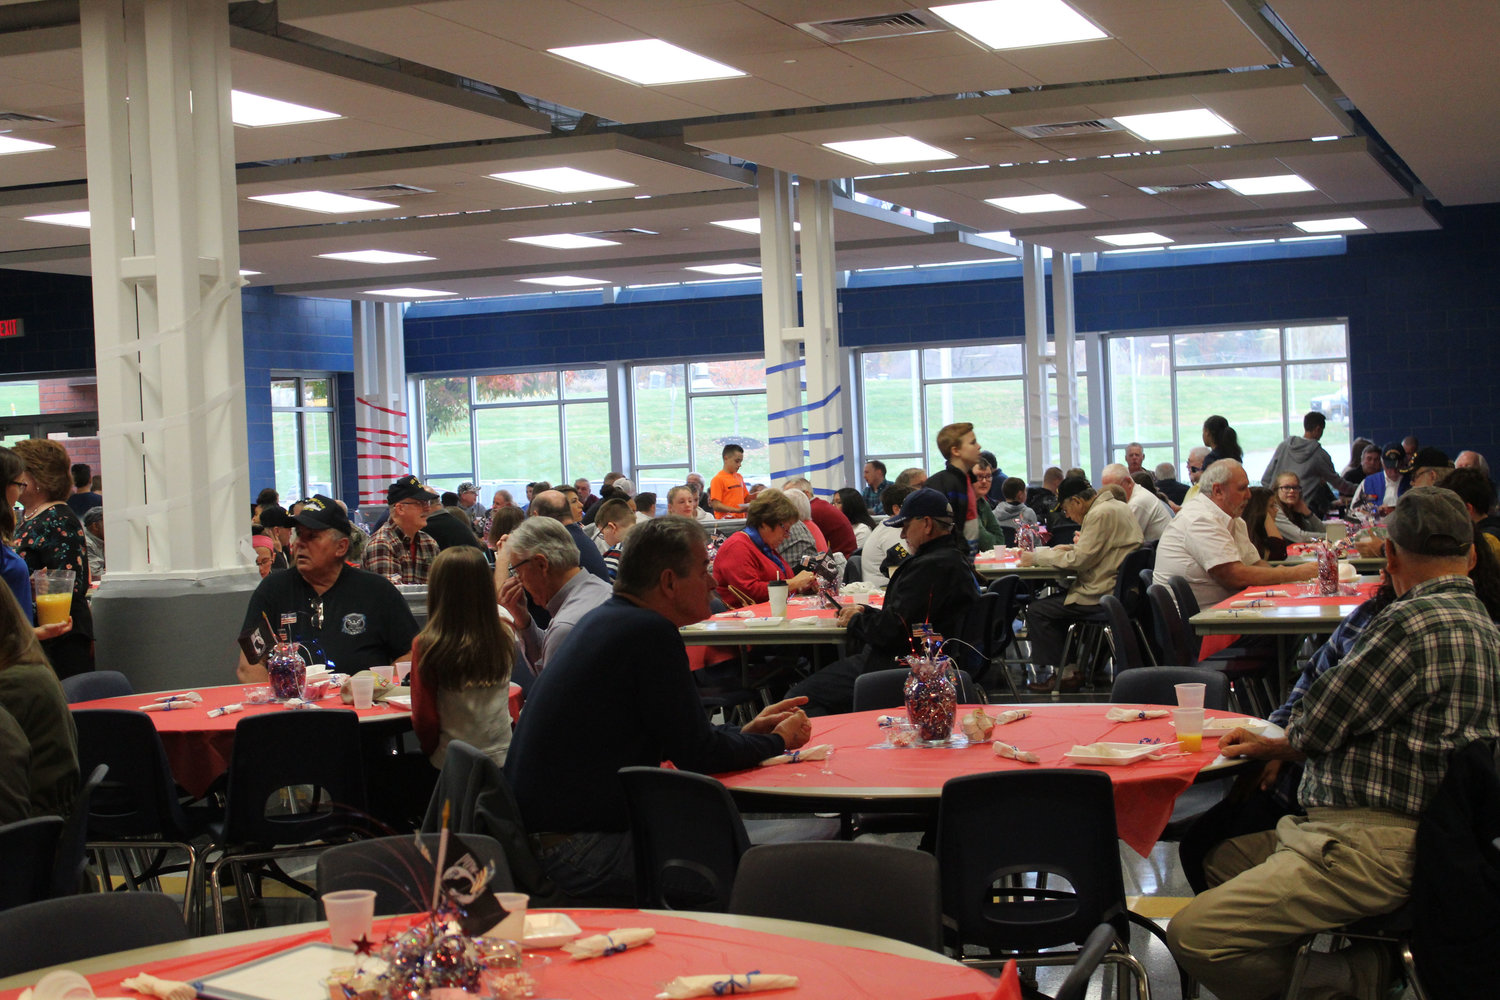 Veterans, their family members, and students gathered for breakfast at MAMS on Nov. 9 as part of the school's Veterans Day program.